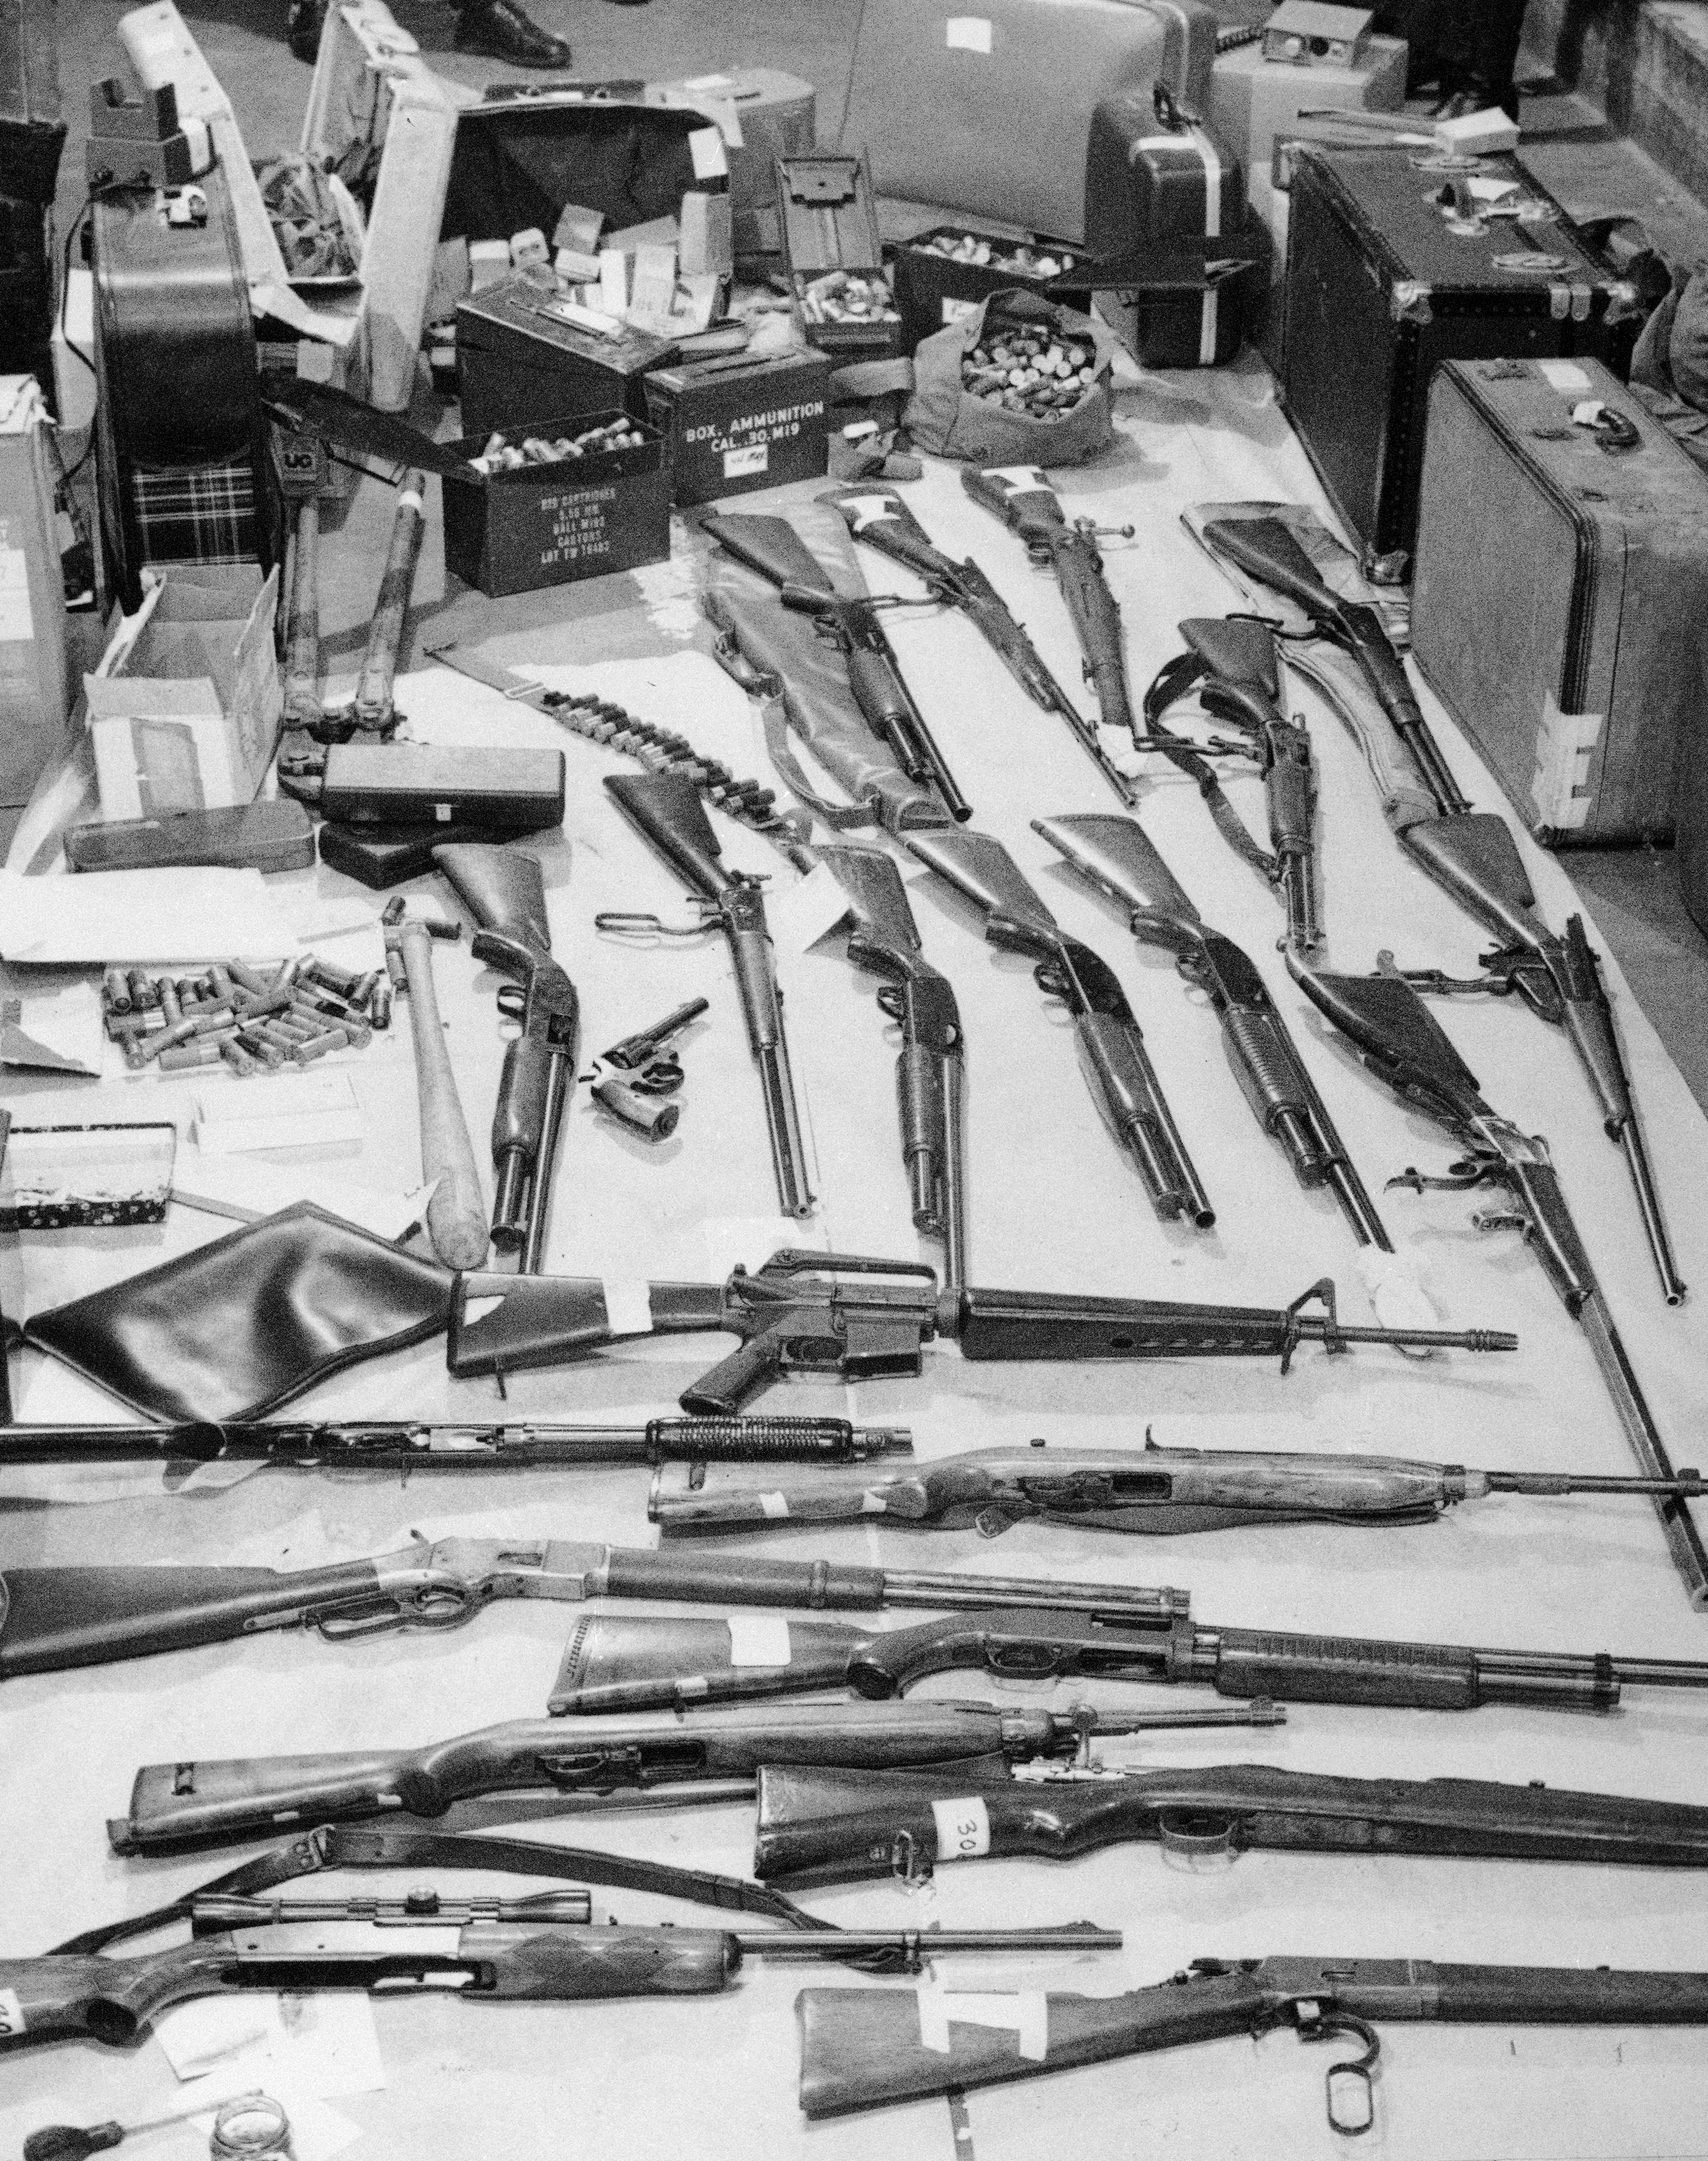 Police display guns and ammunition seized by officers on April 16, 1974, when 14 Black Panther Party members were arrested at the party�'s precinct headquarters. Bobby Seale called the raid �a plot to discredit them, timed to hurt the organization'�s chances of winning a majority of seats in next year'�s City Council.